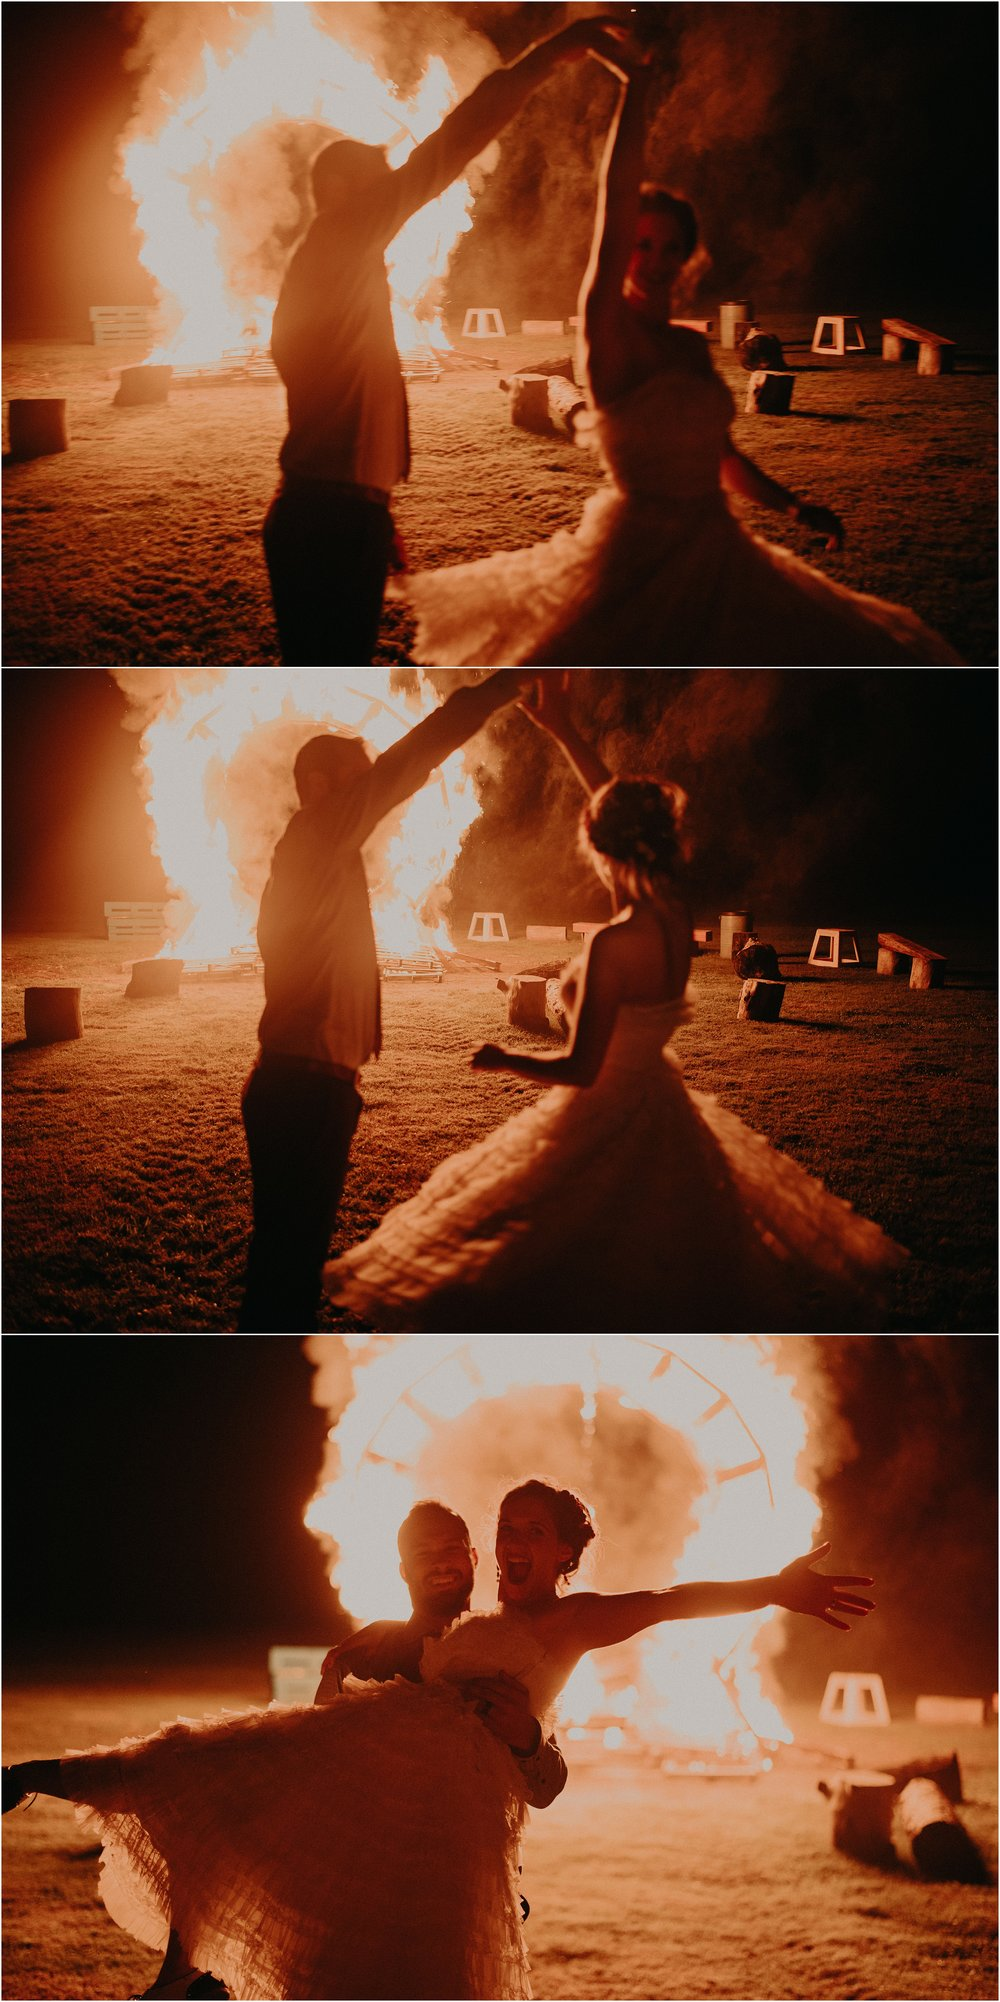 Twirling the bride in front of the burning fire installation at their wedding reception